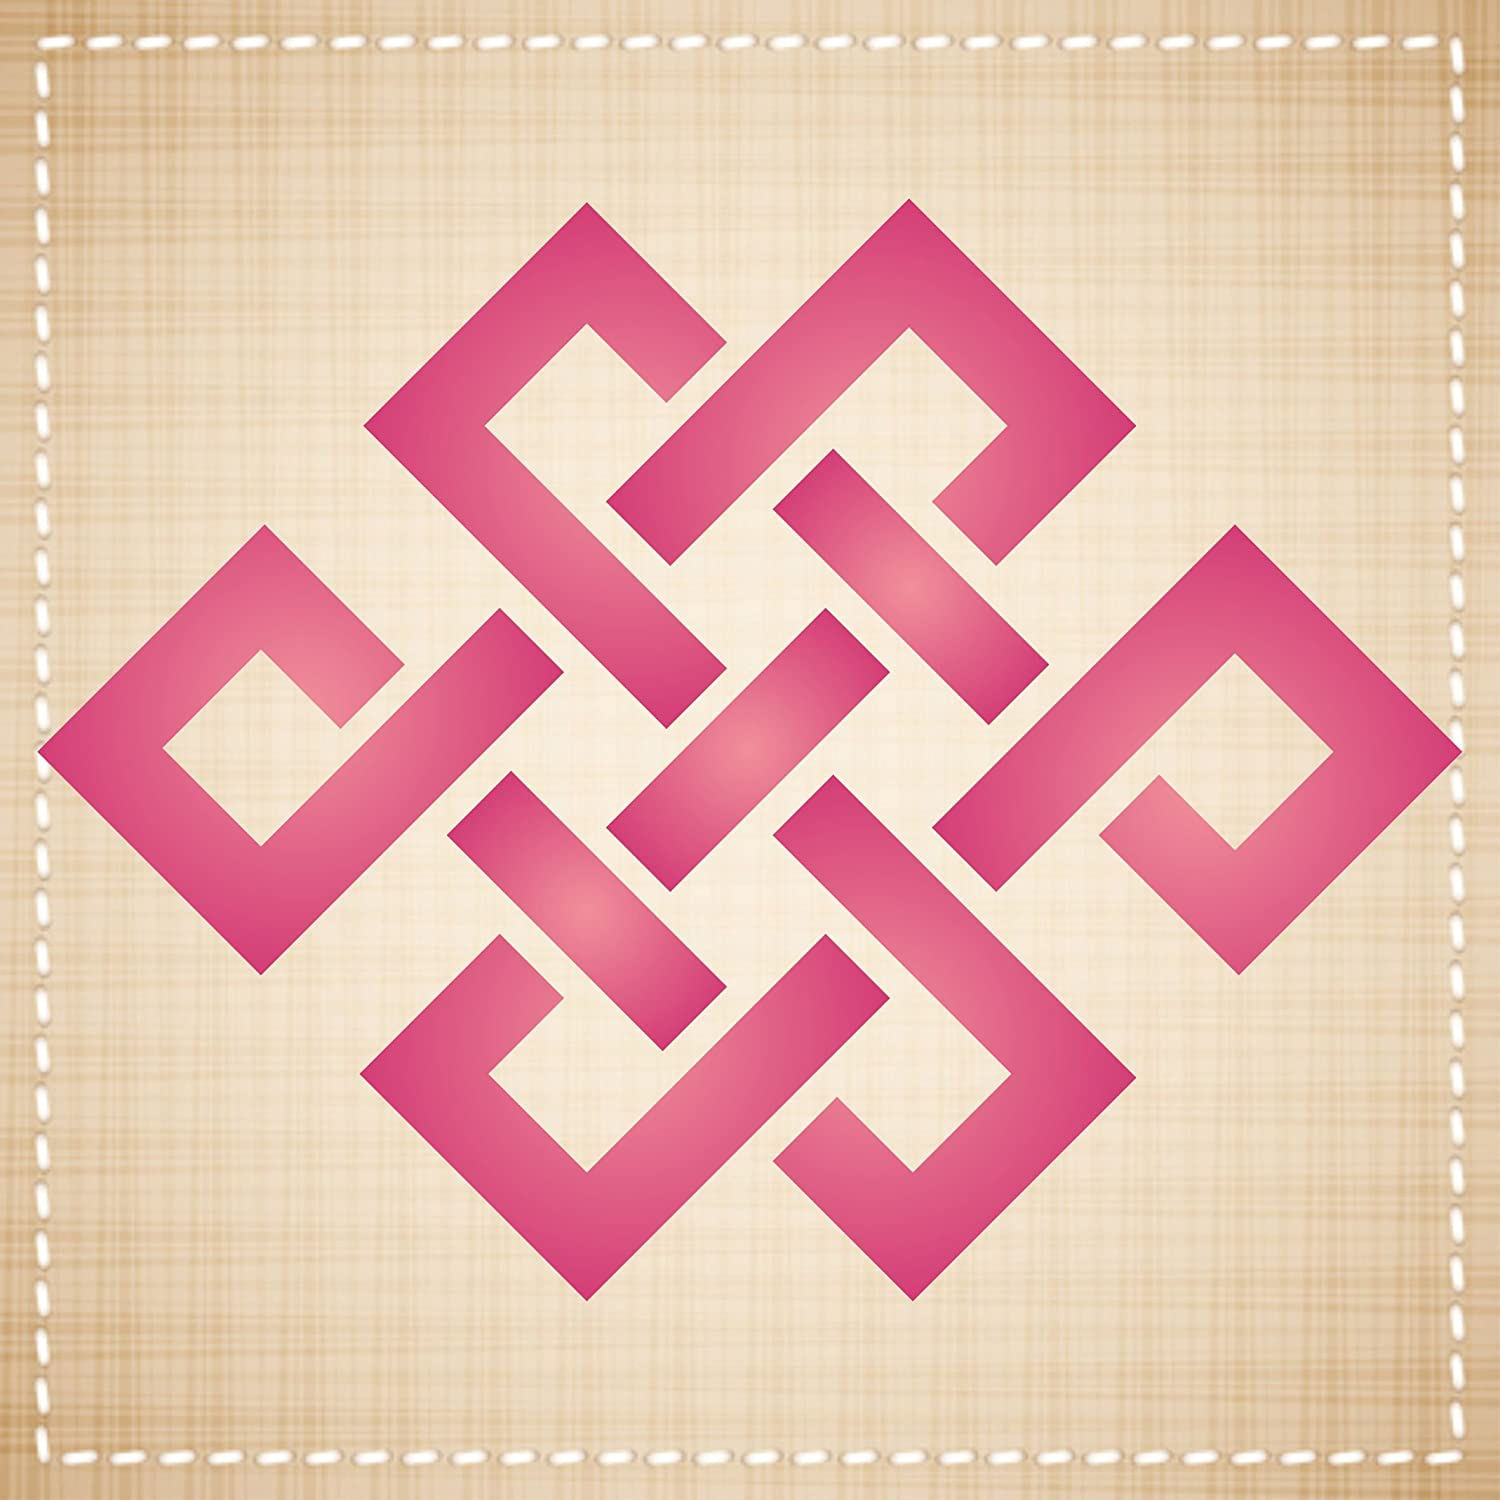 Endless Knot Stencil Glass Walls Floors Size: 3.25w x 3.25h Best Quality Taoist Asian Symbols Reusable Stencils for Painting Use for Scrapbooking Wood Fabrics Cards and More/…